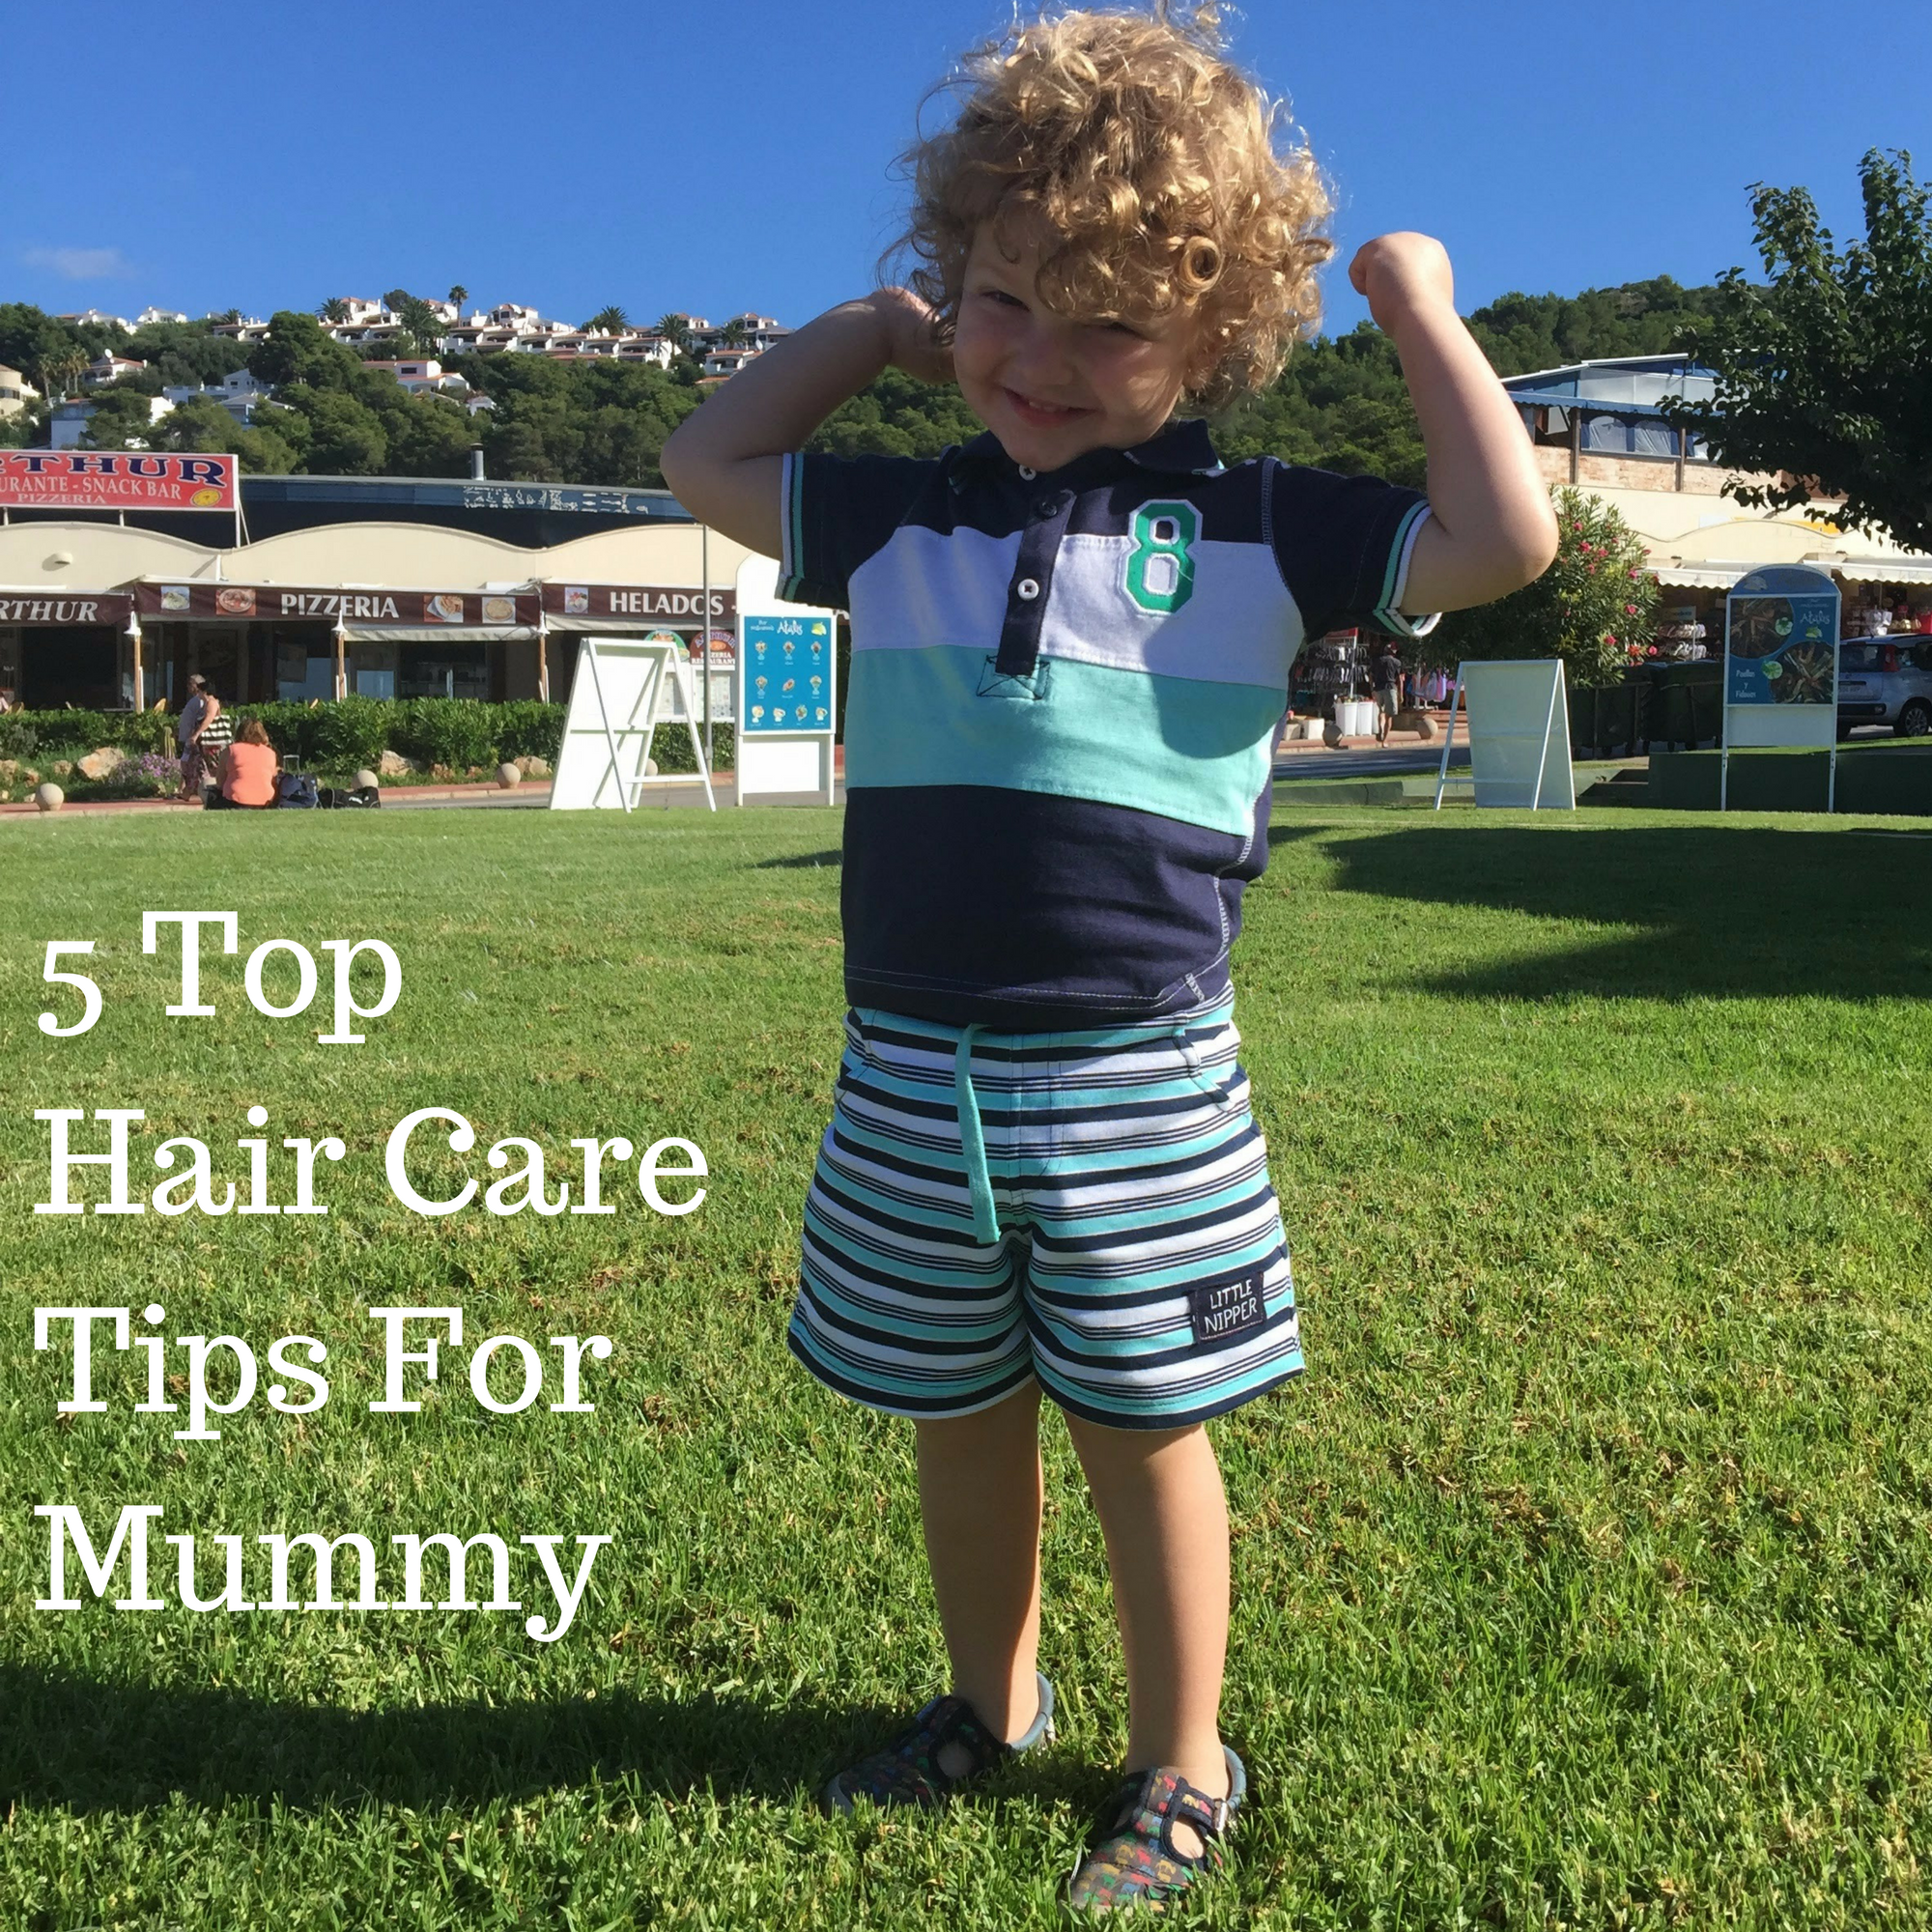 5 Top Hair Care Tips For Mummy